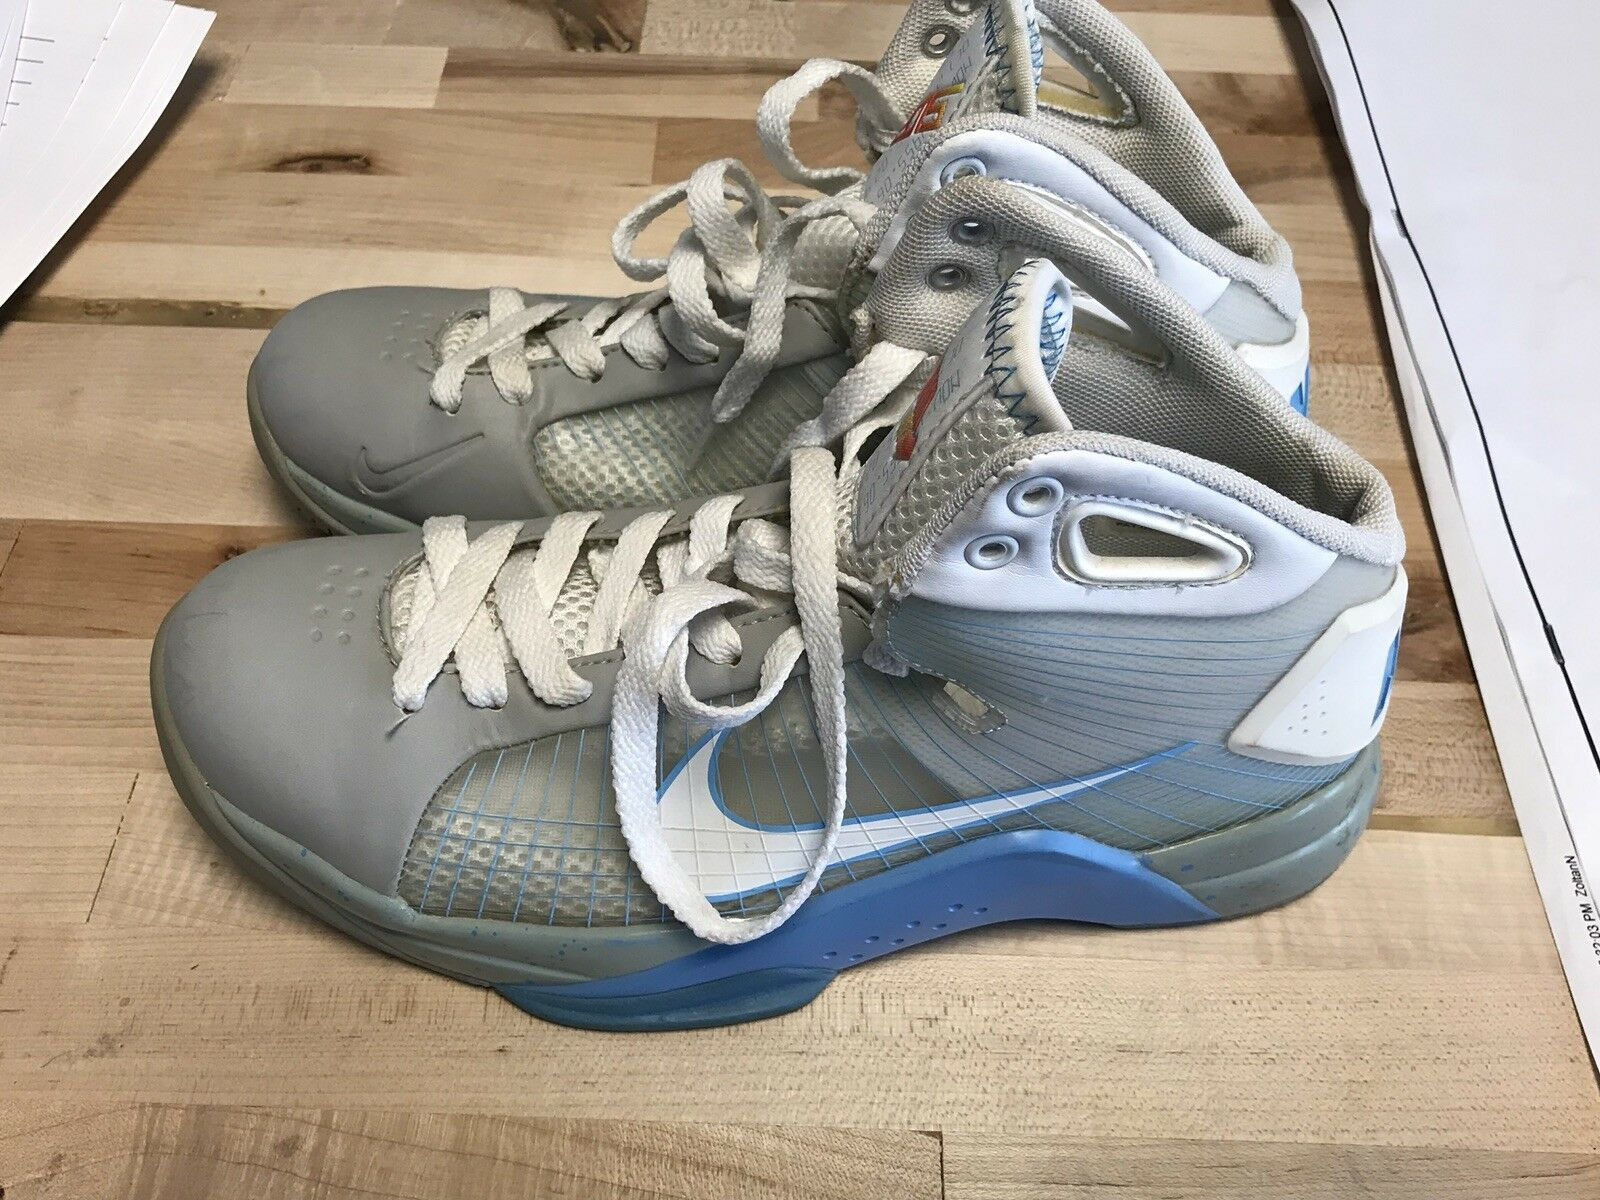 Nike Hyperdunk Supreme The Marty McFly Back To The Supreme Future BTTF Shoes Mens Size 8.5 b61c8e